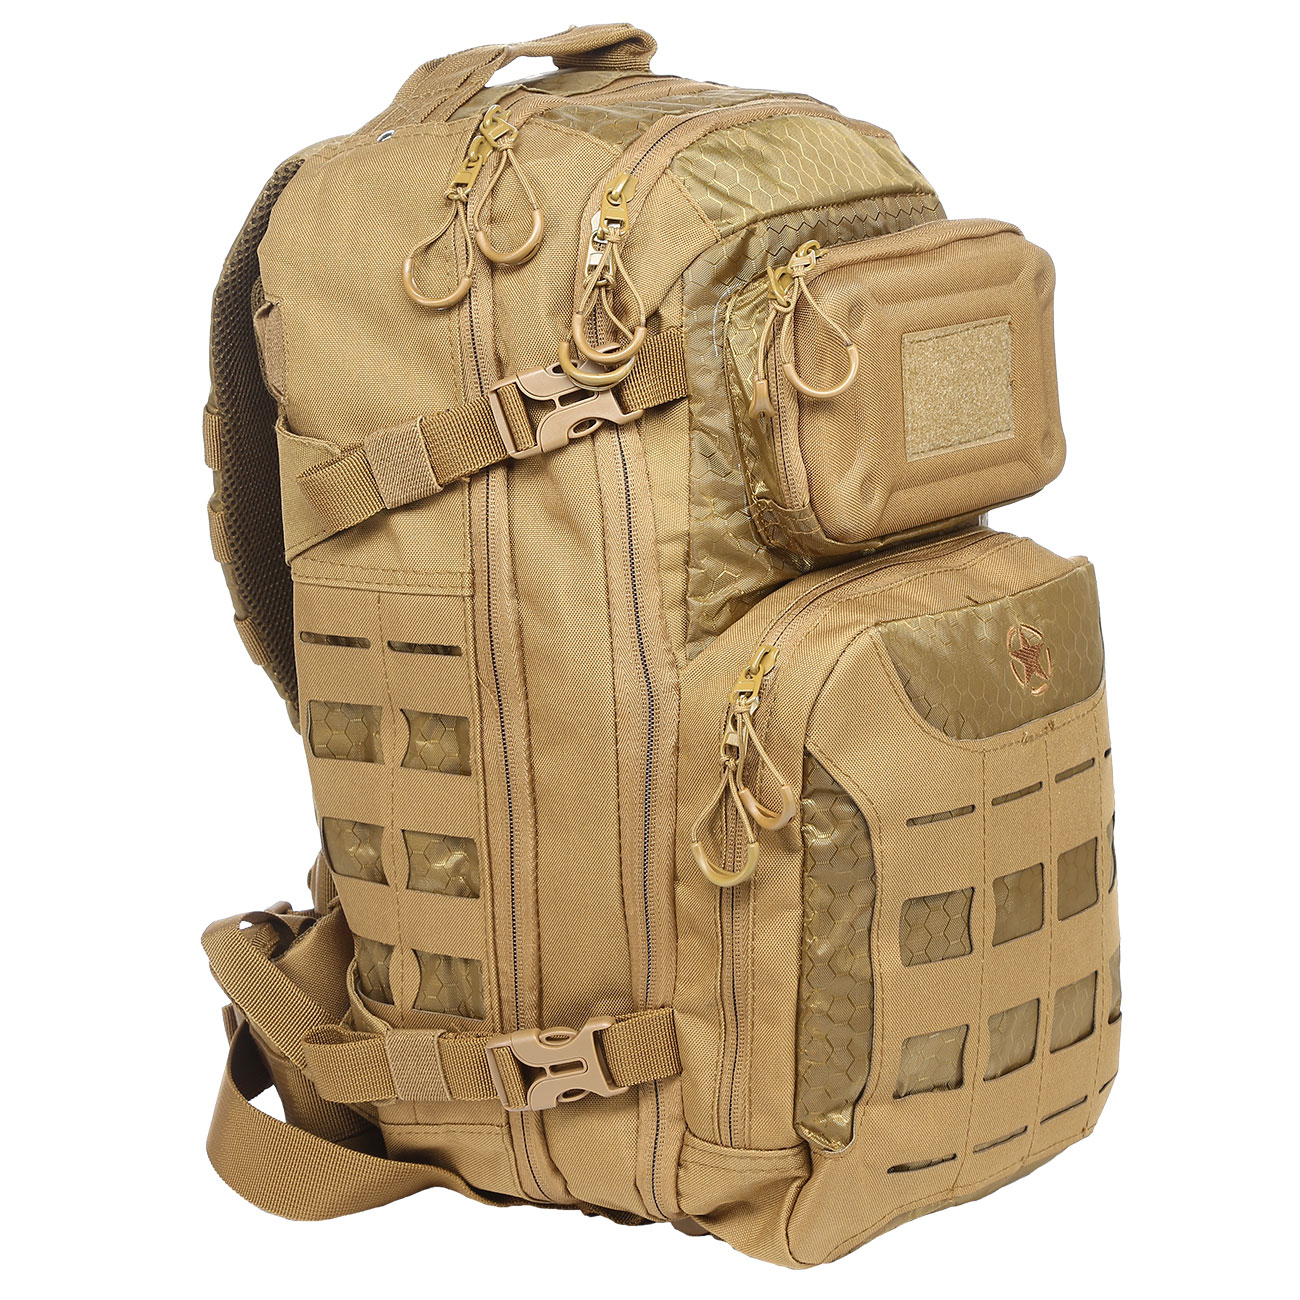 MFH Rucksack Operation I 30 Liter coyote 0